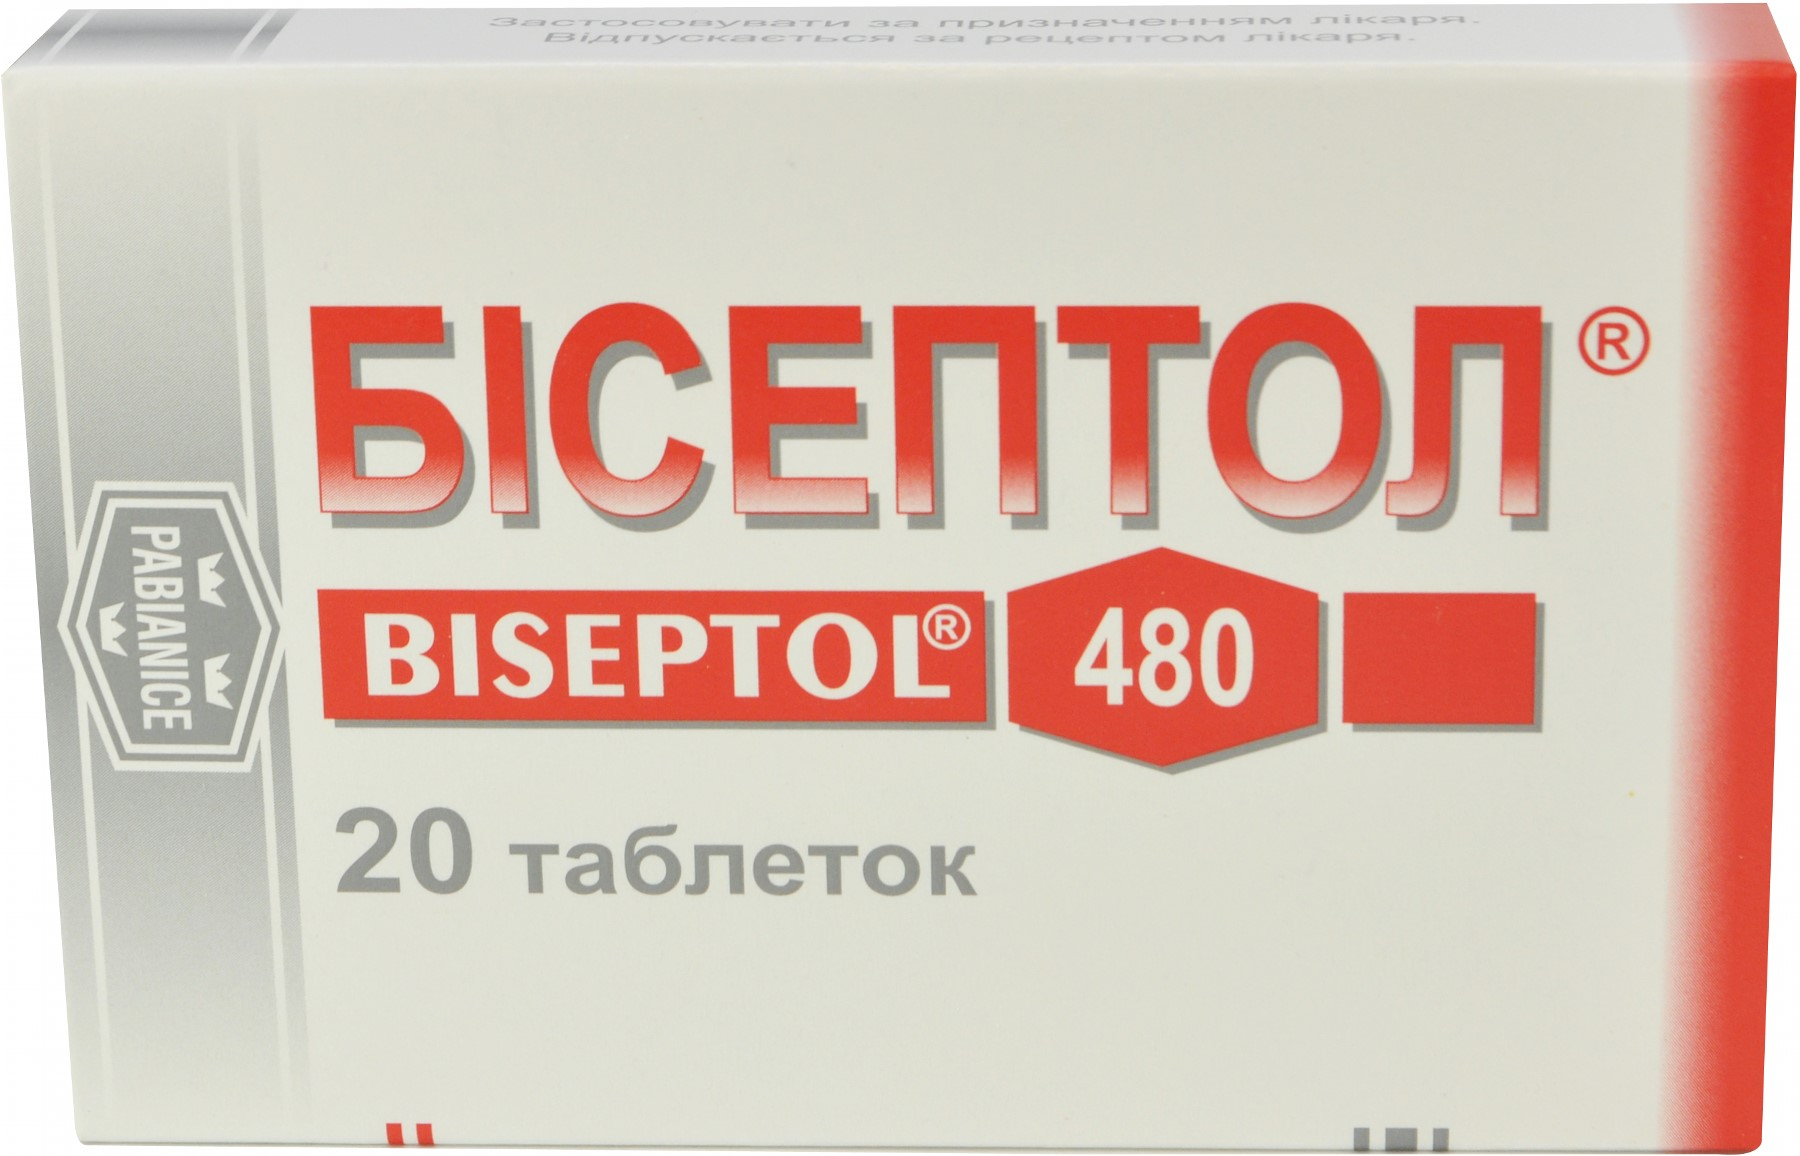 Medicine Biseptol. Instruction 53